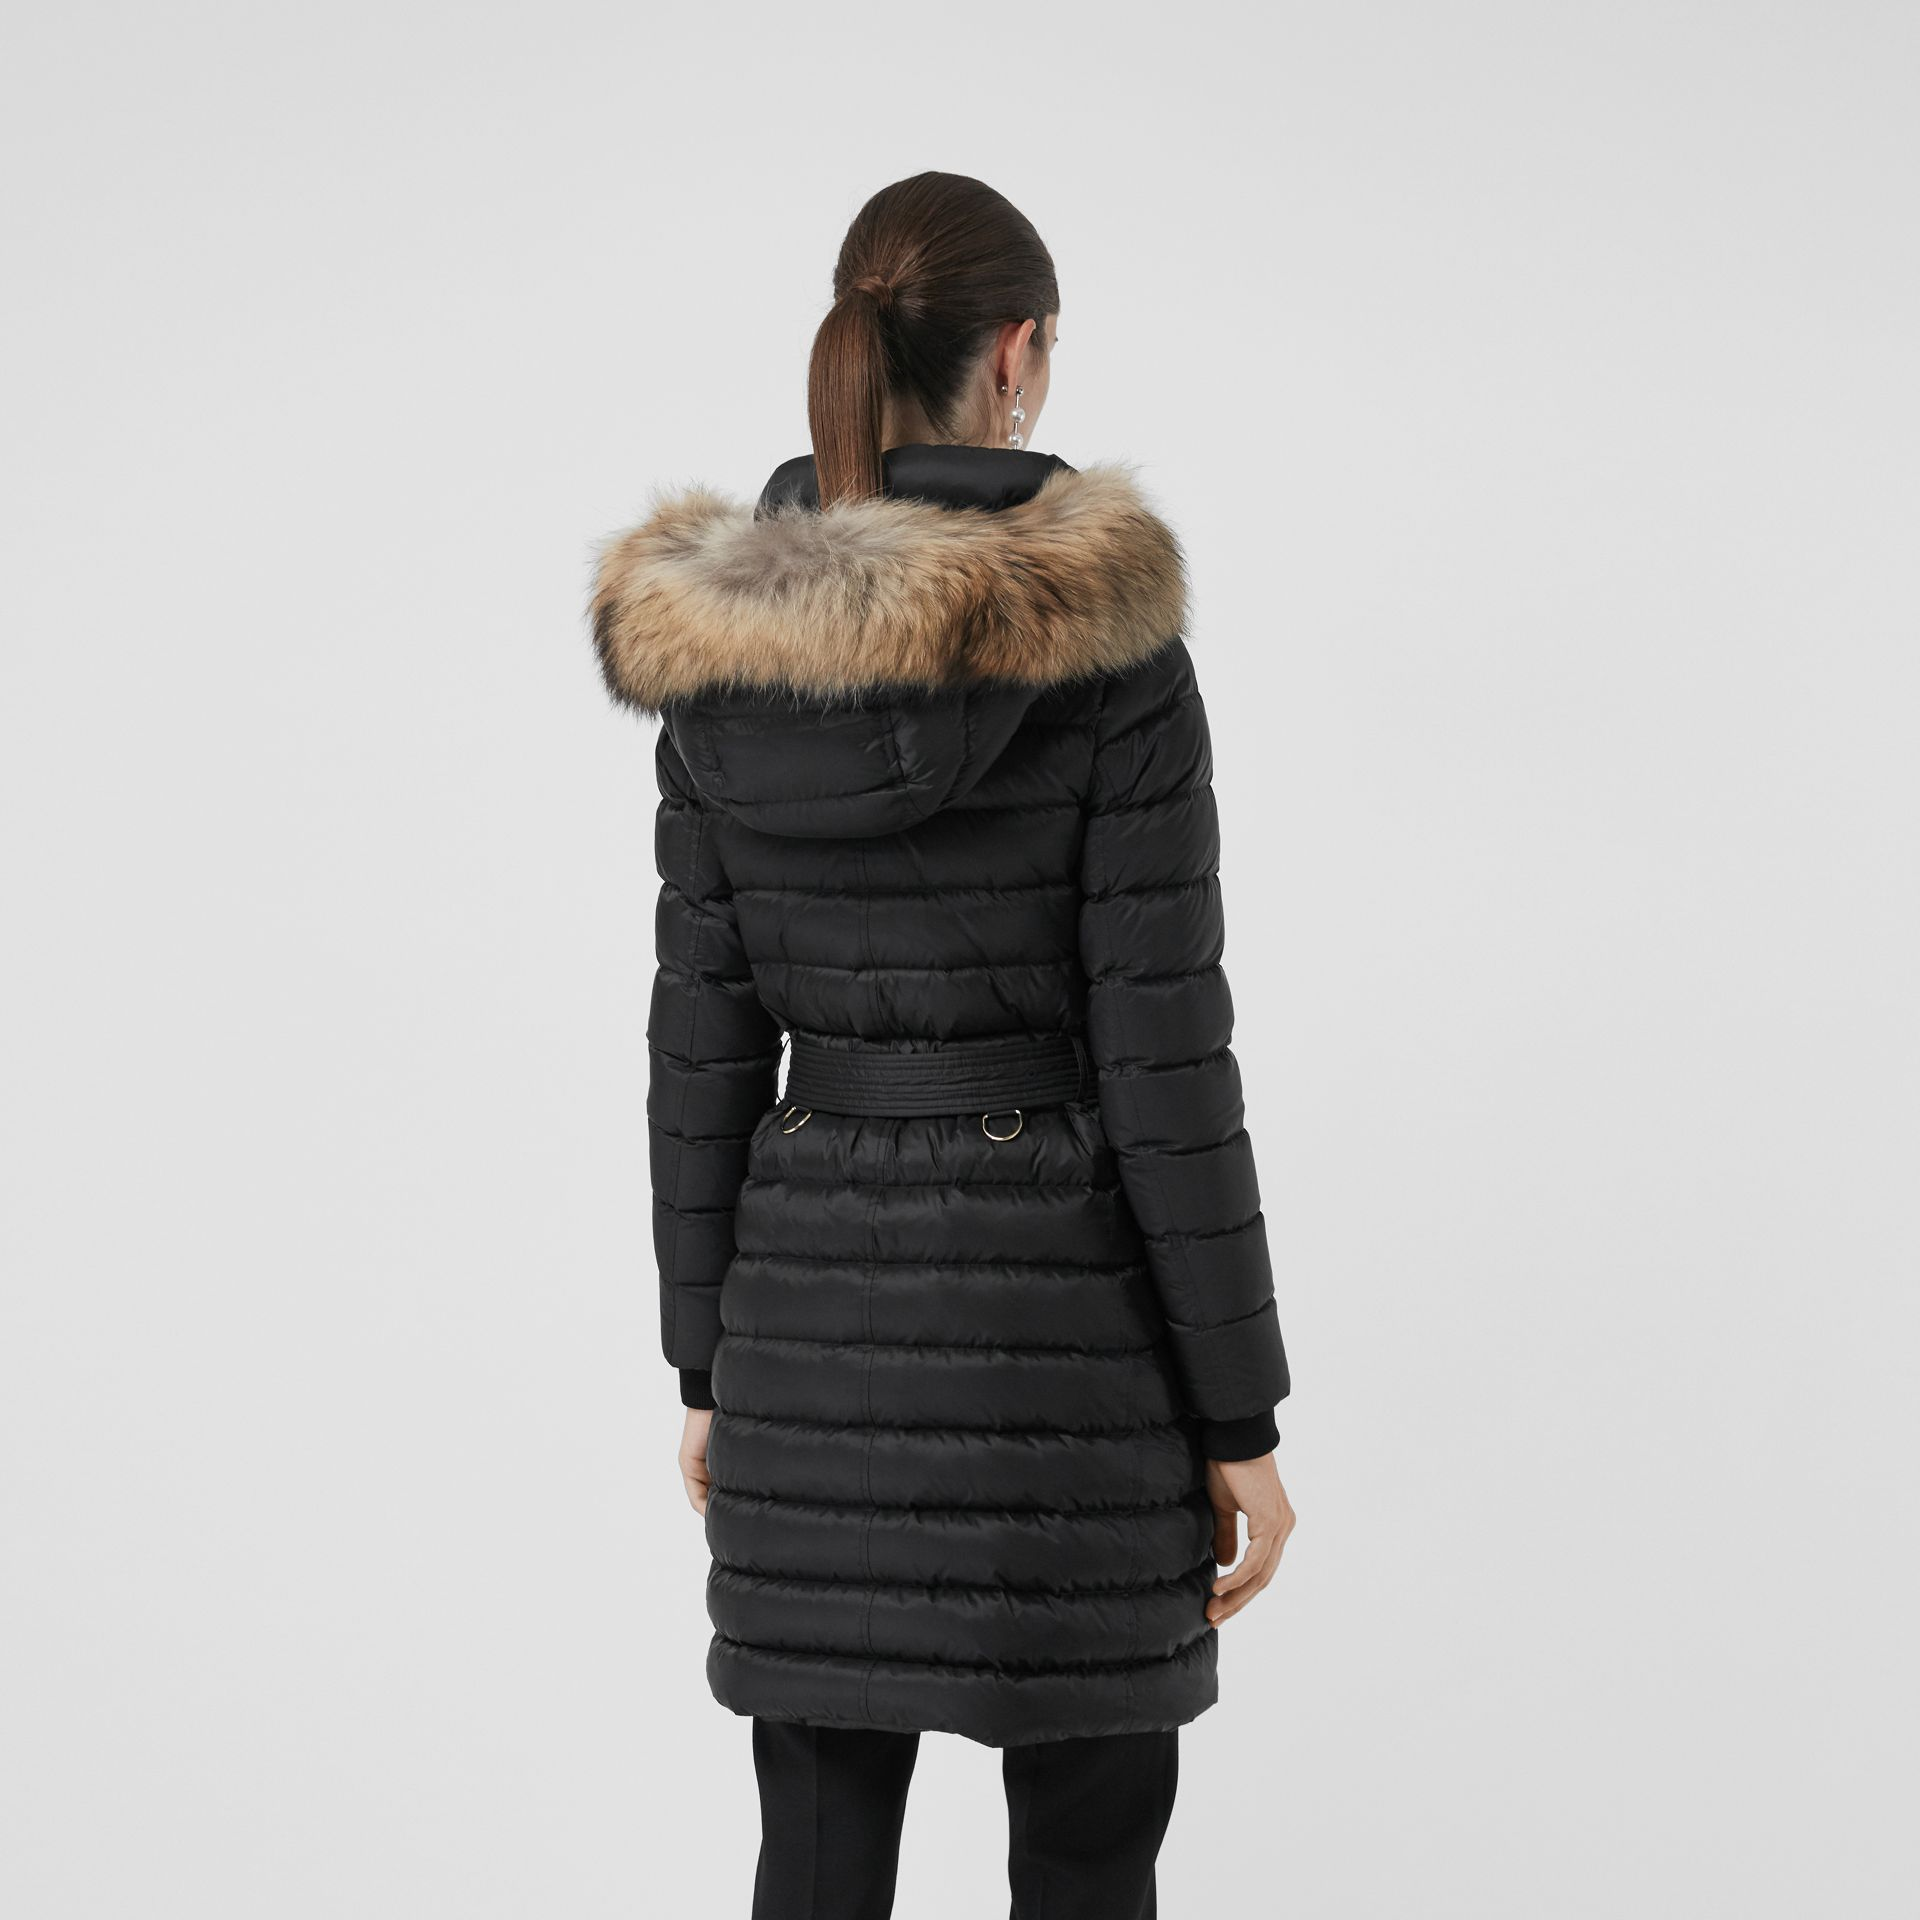 Detachable Fur Trim Down-filled Puffer Coat with Hood in Black - Women | Burberry - gallery image 2